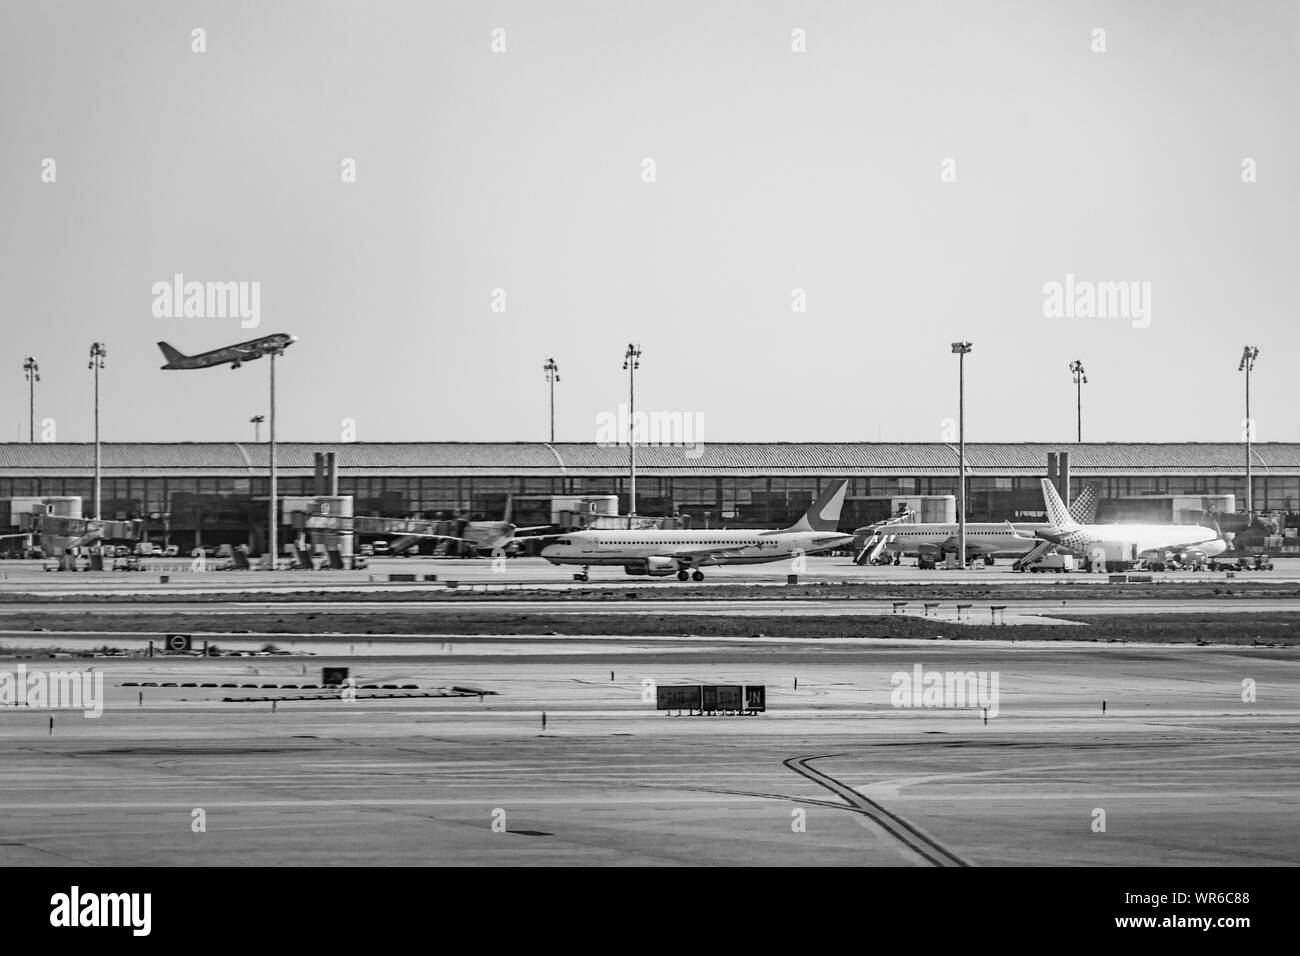 airport boarding, international airport, boarding area, departure check, eparture check, tourist, runway Stock Photo